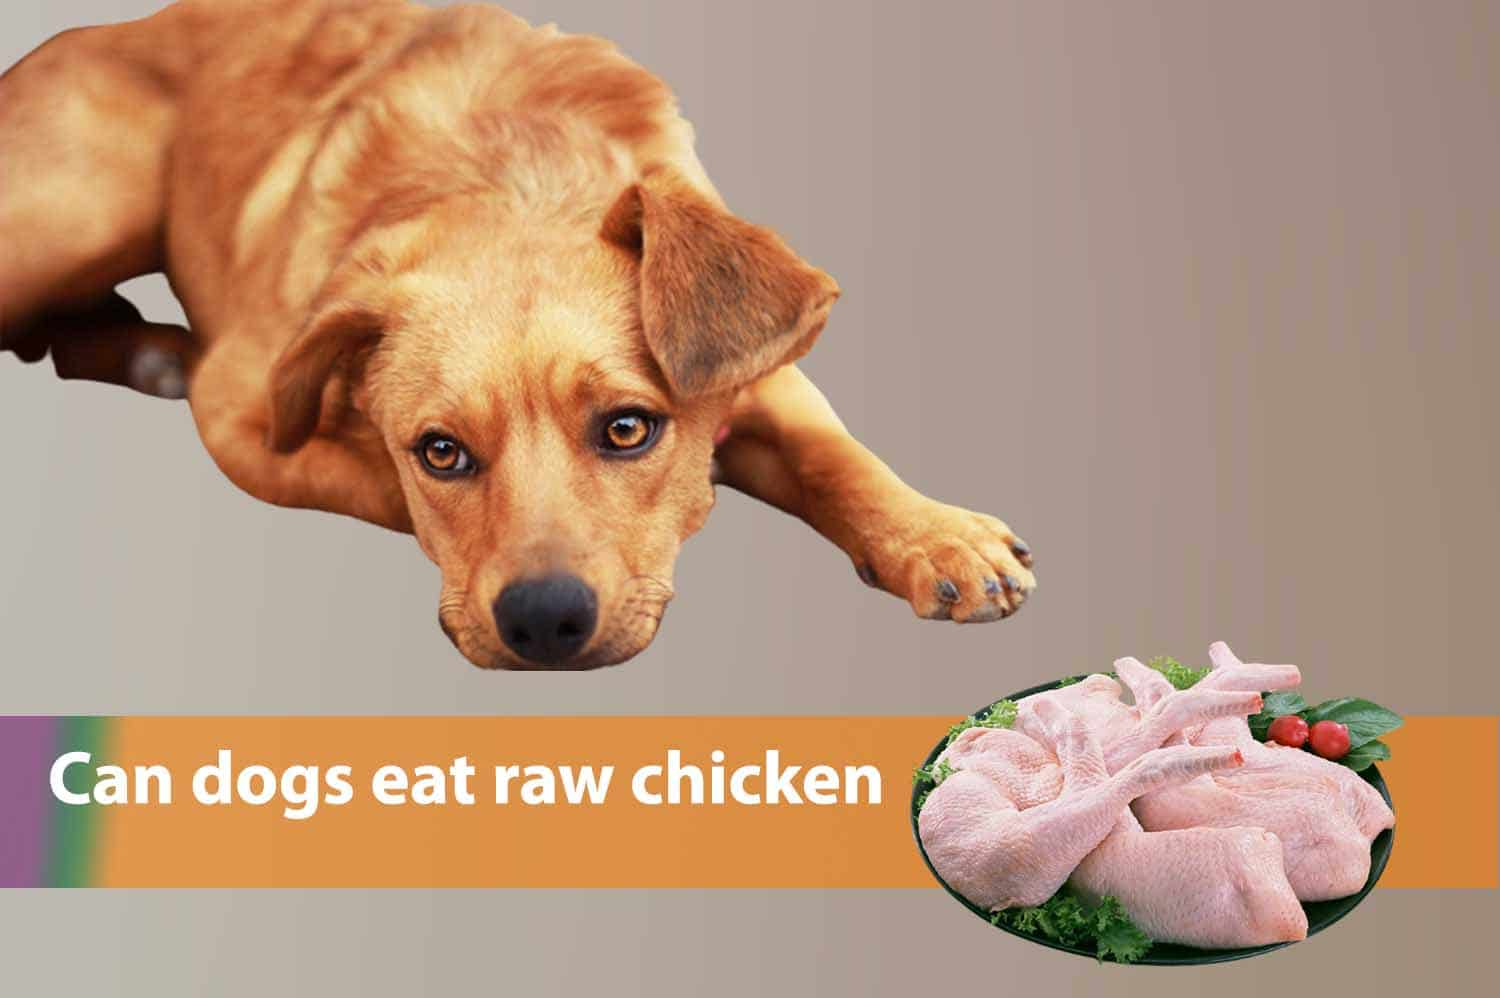 Can dogs eat raw chicken? Let's click for answers